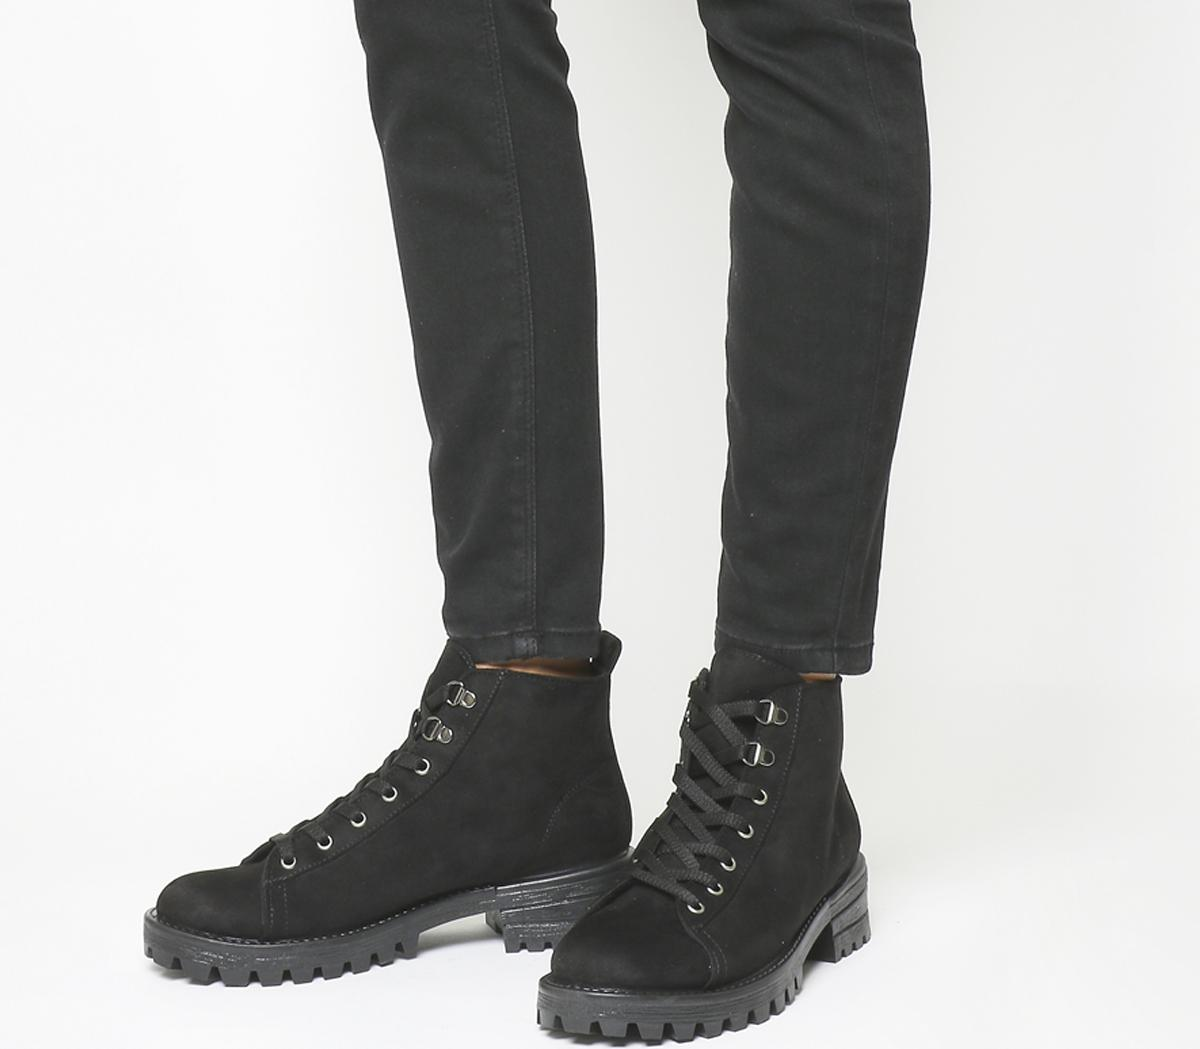 Avalanche Lace Up Hiker Boots